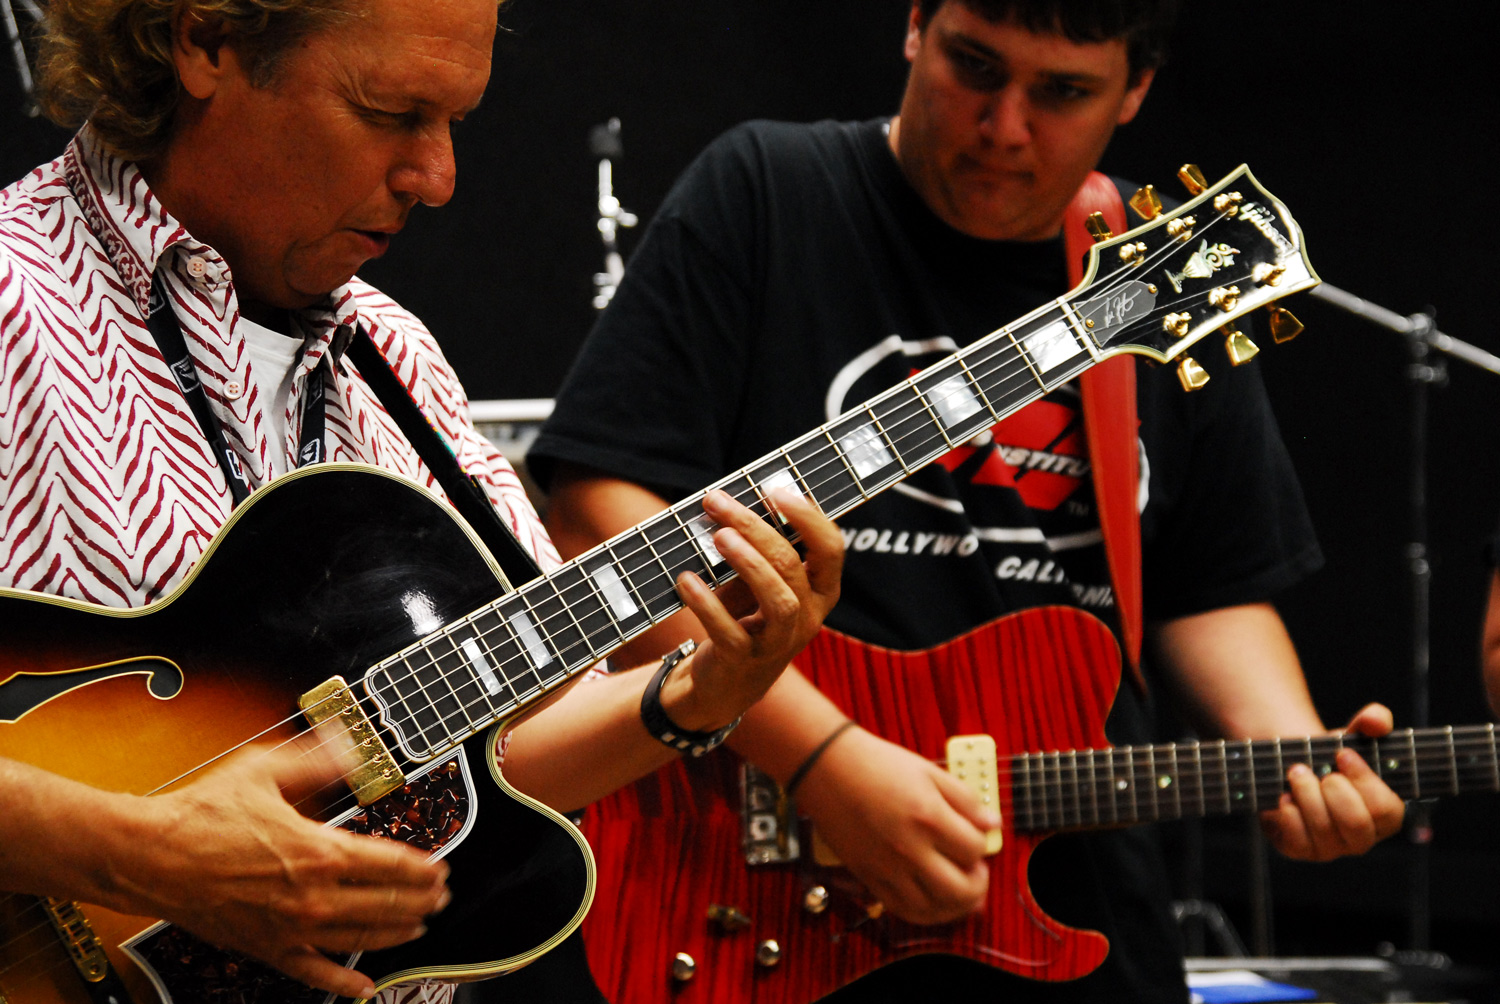 Lee Ritenour & Guitar Track Camper in a Meet the Artist Session